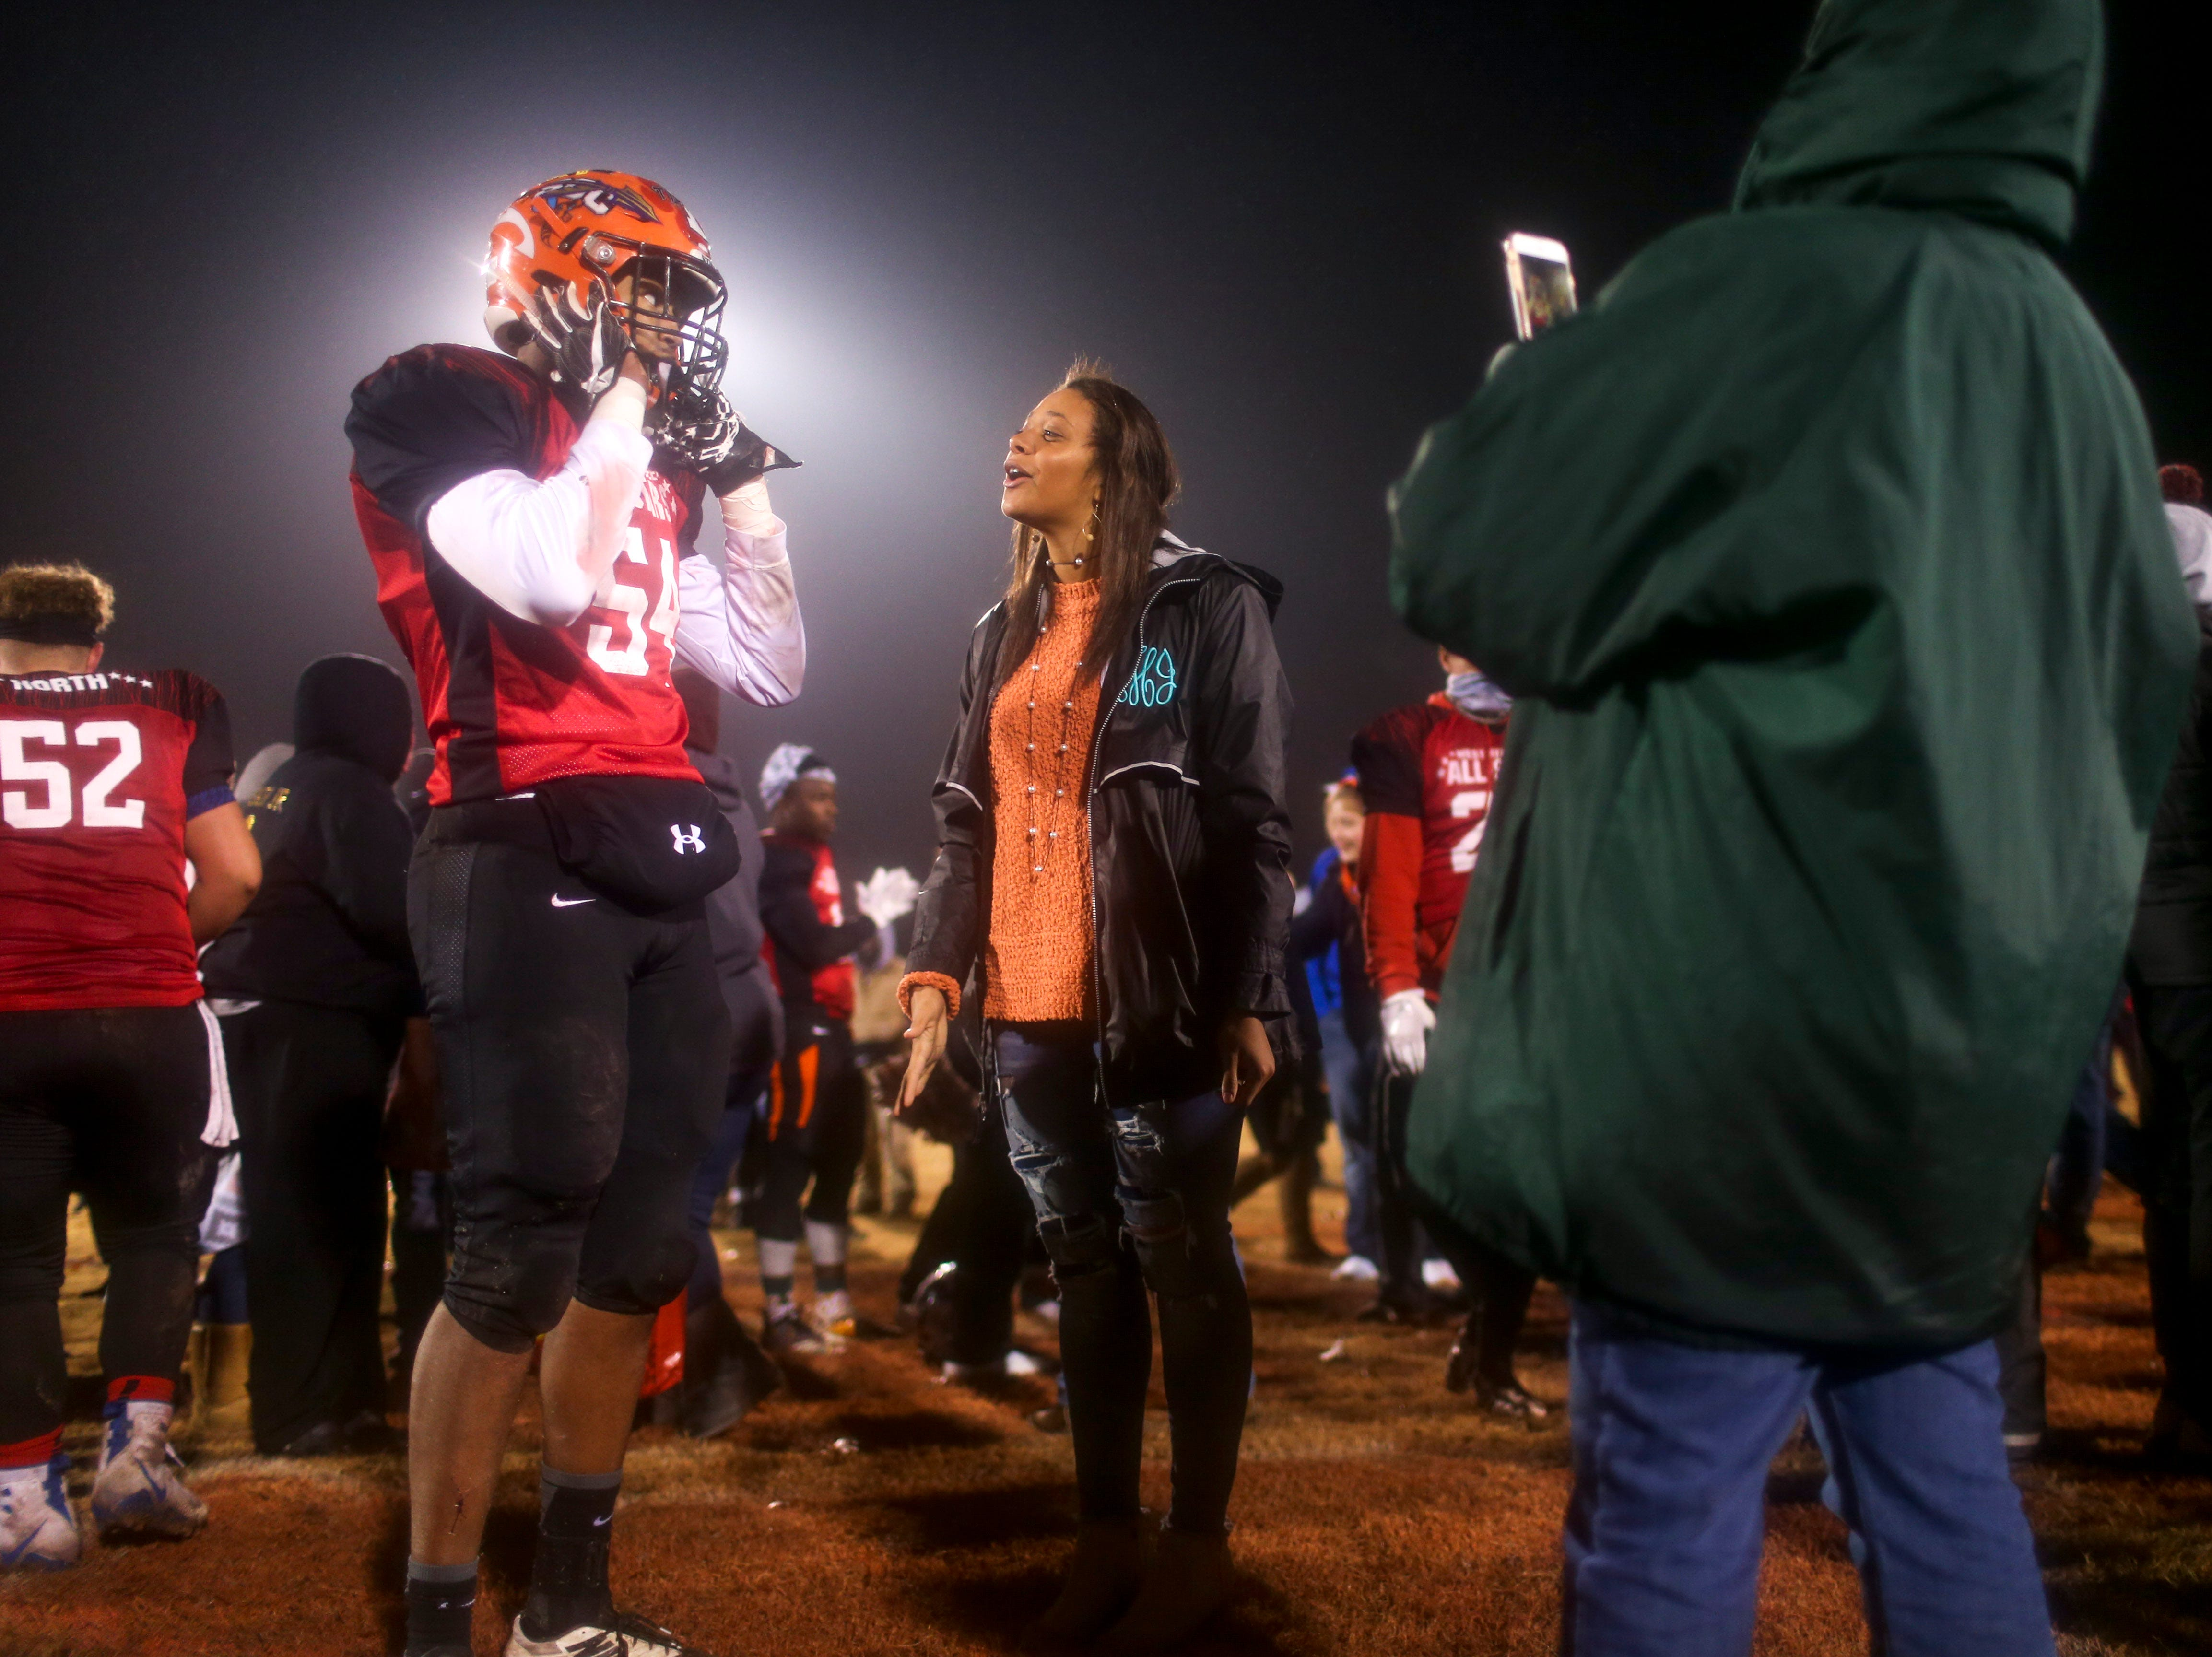 South Gibson's Marcus Jackson (54) greets family and friends after the West Tennessee All-Star football game at University School of Jackson in Jackson, Tenn., on Friday, Dec. 7, 2018.